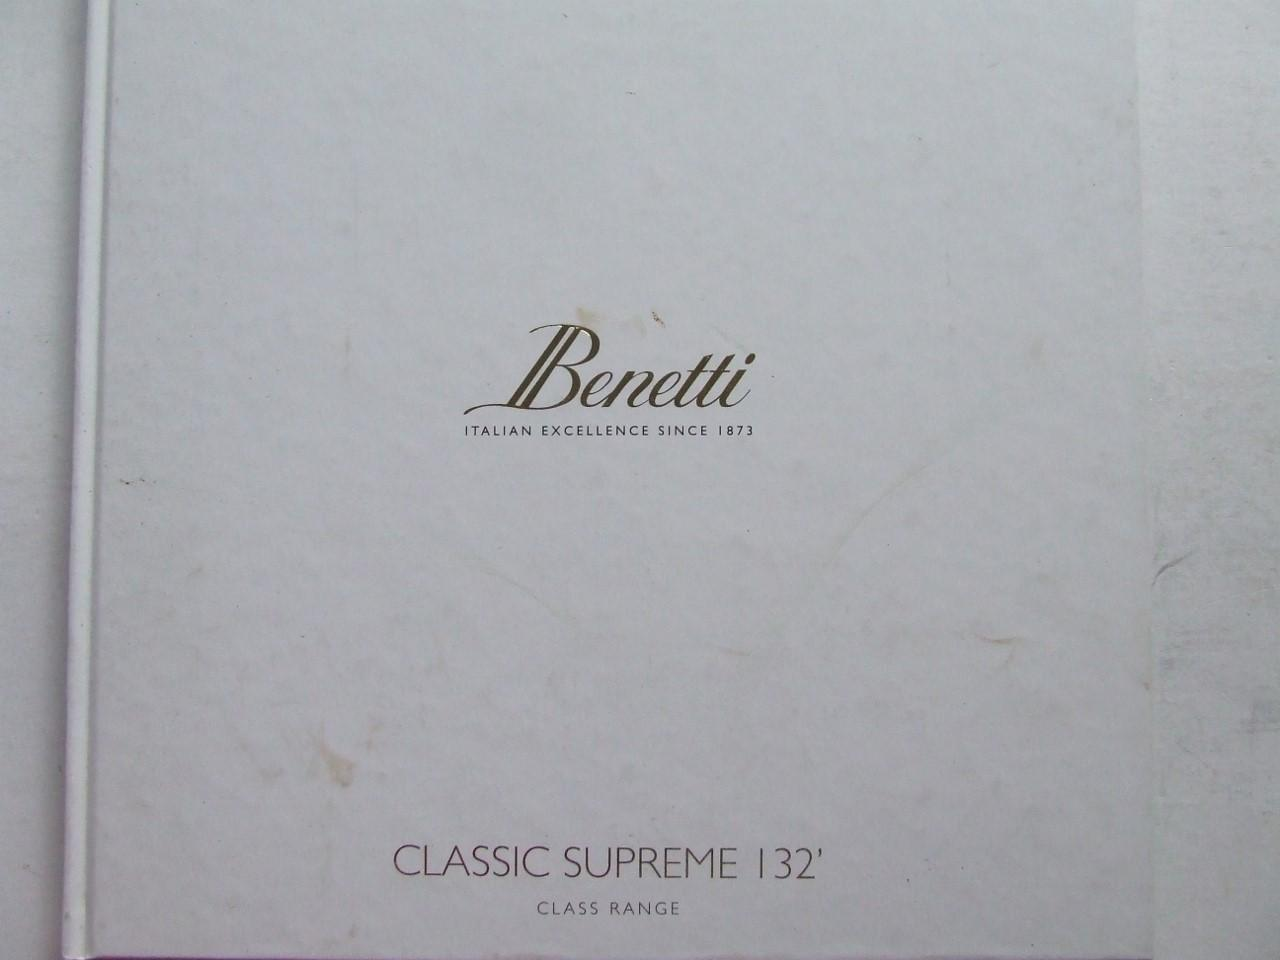 Benetti, Italian excellence since 1873